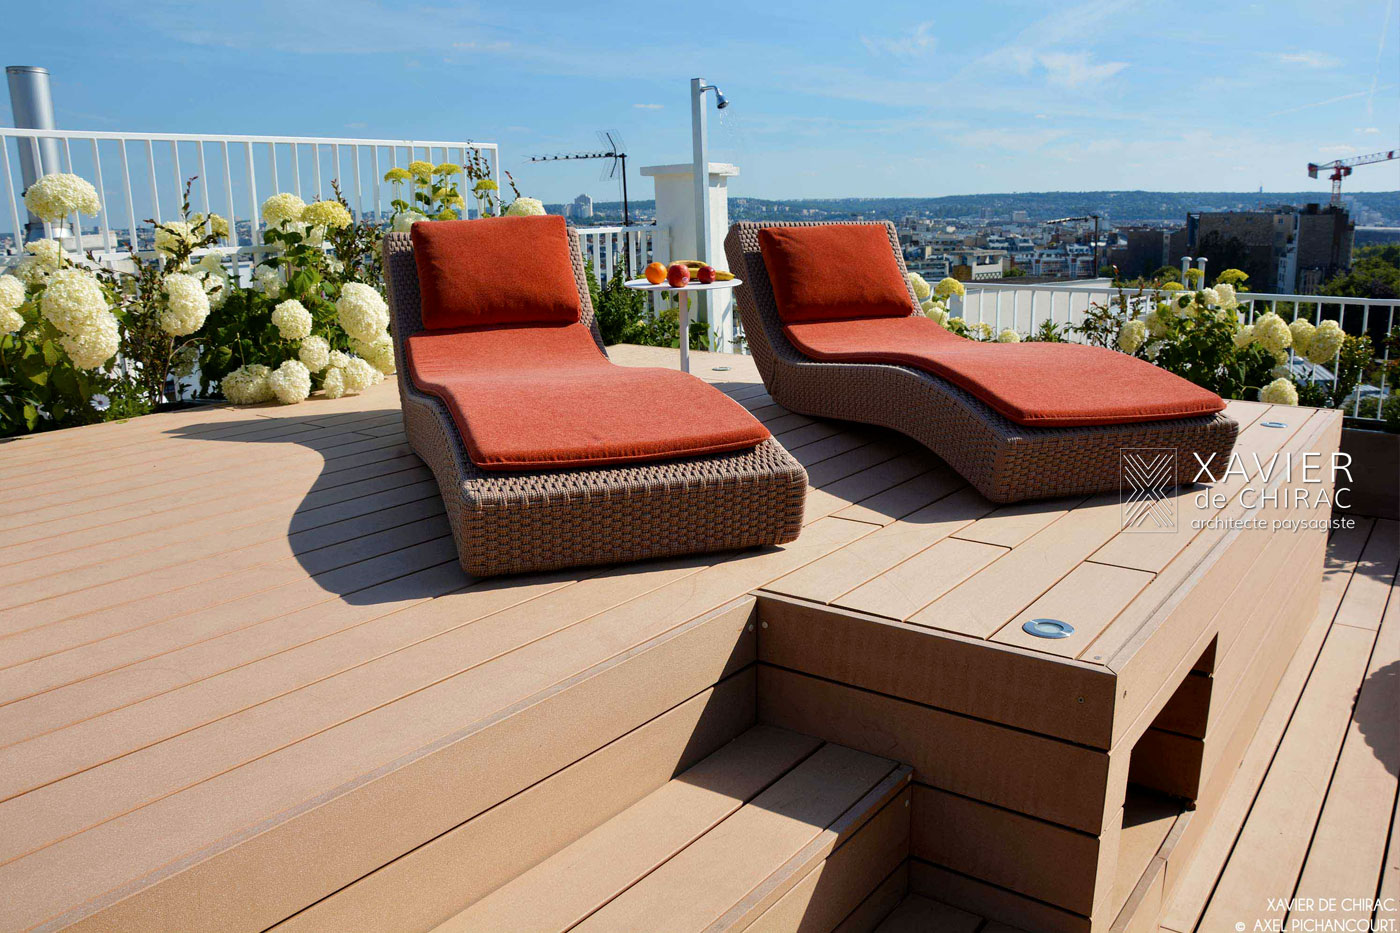 terrasse jacuzzi xavier de chirac. Black Bedroom Furniture Sets. Home Design Ideas